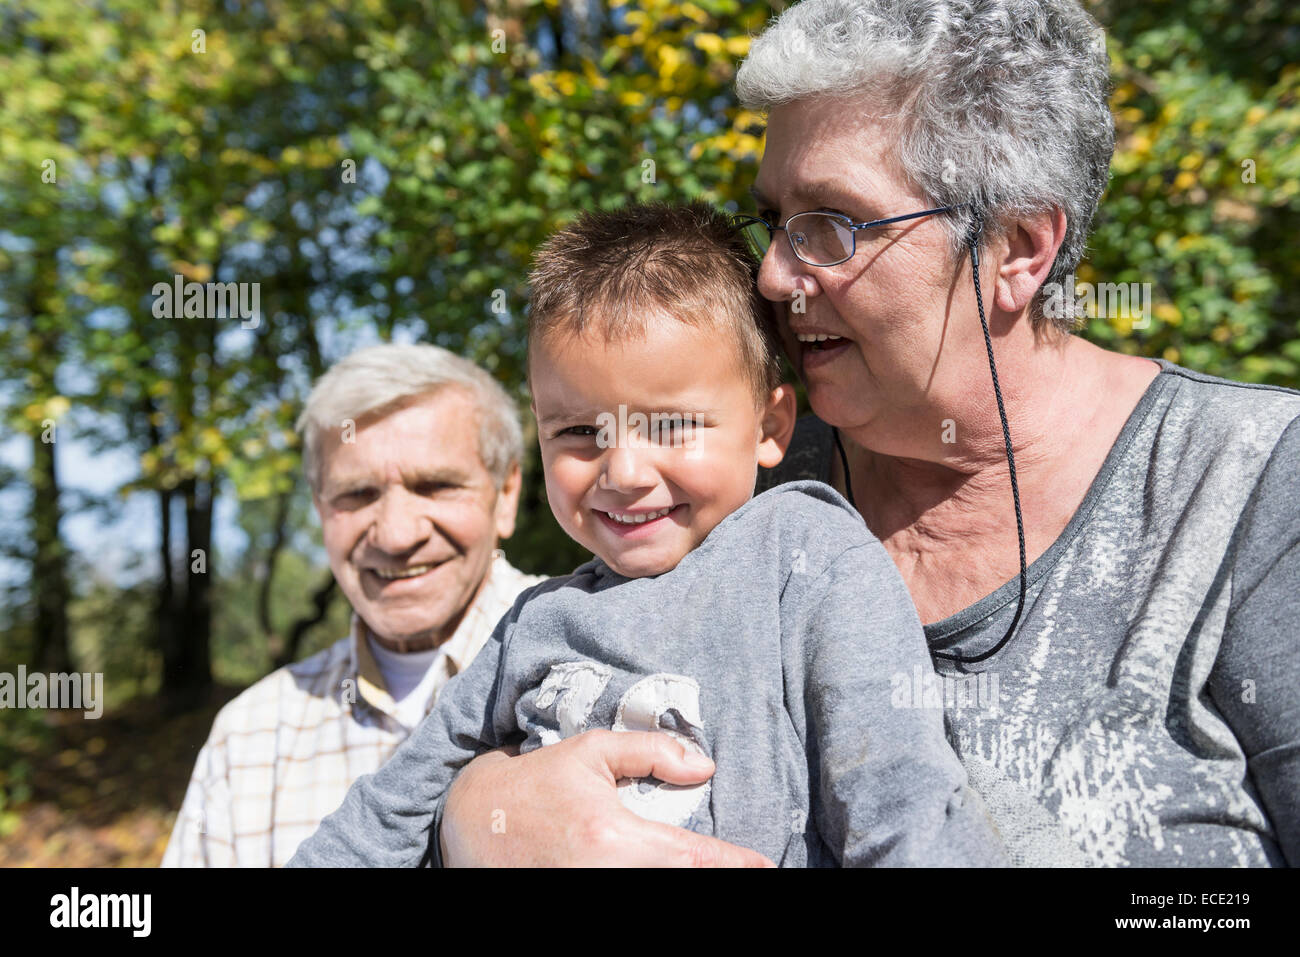 Grandparents young small boy happy sitting - Stock Image